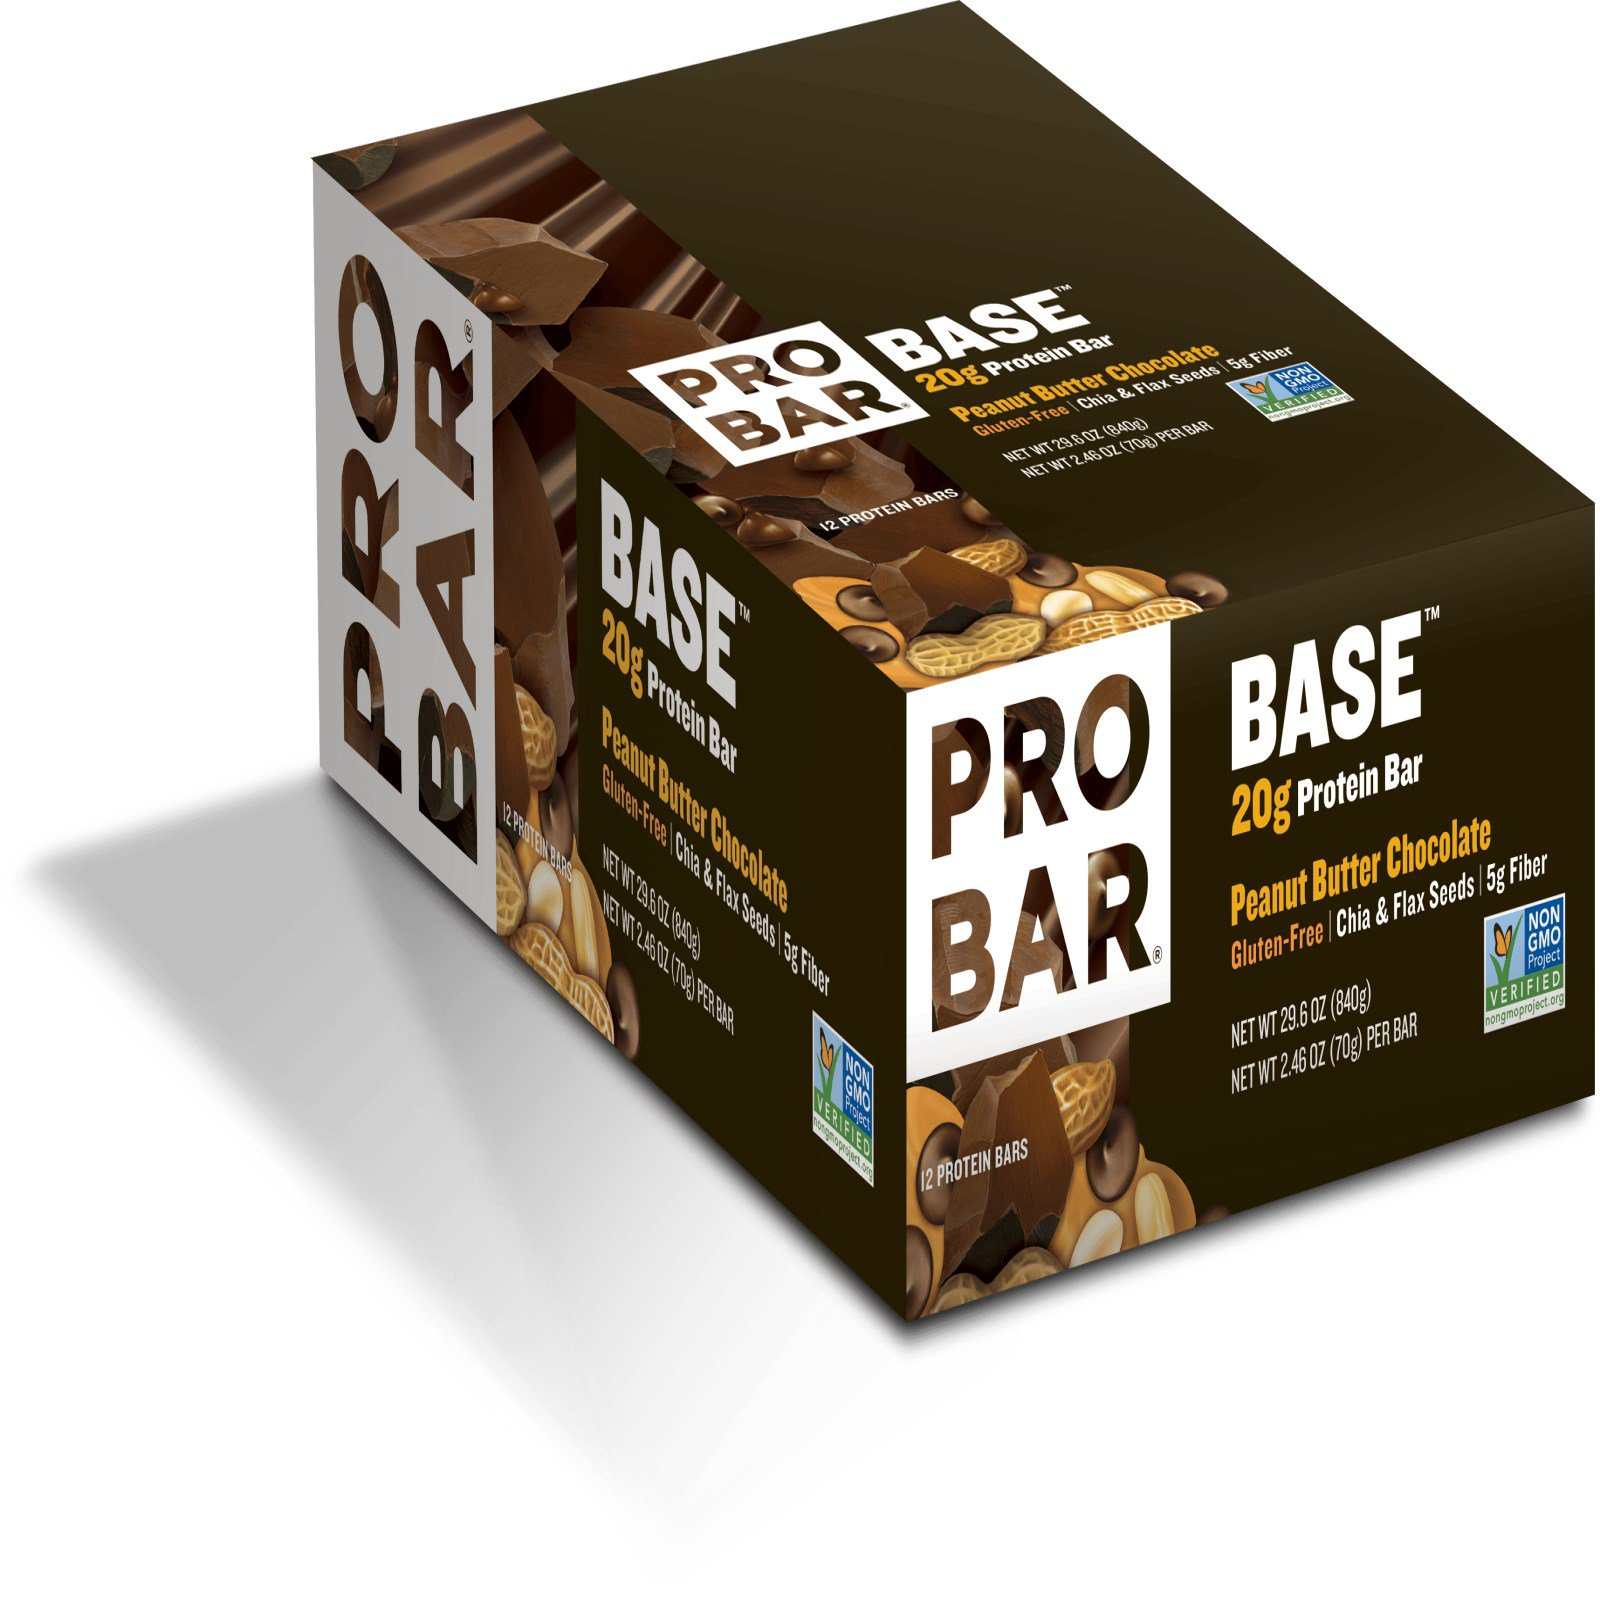 ProBar, Core, The 20 g Protein Bar, Chocolate Peanut Butter, 12 Bars, 2.46 oz. EA